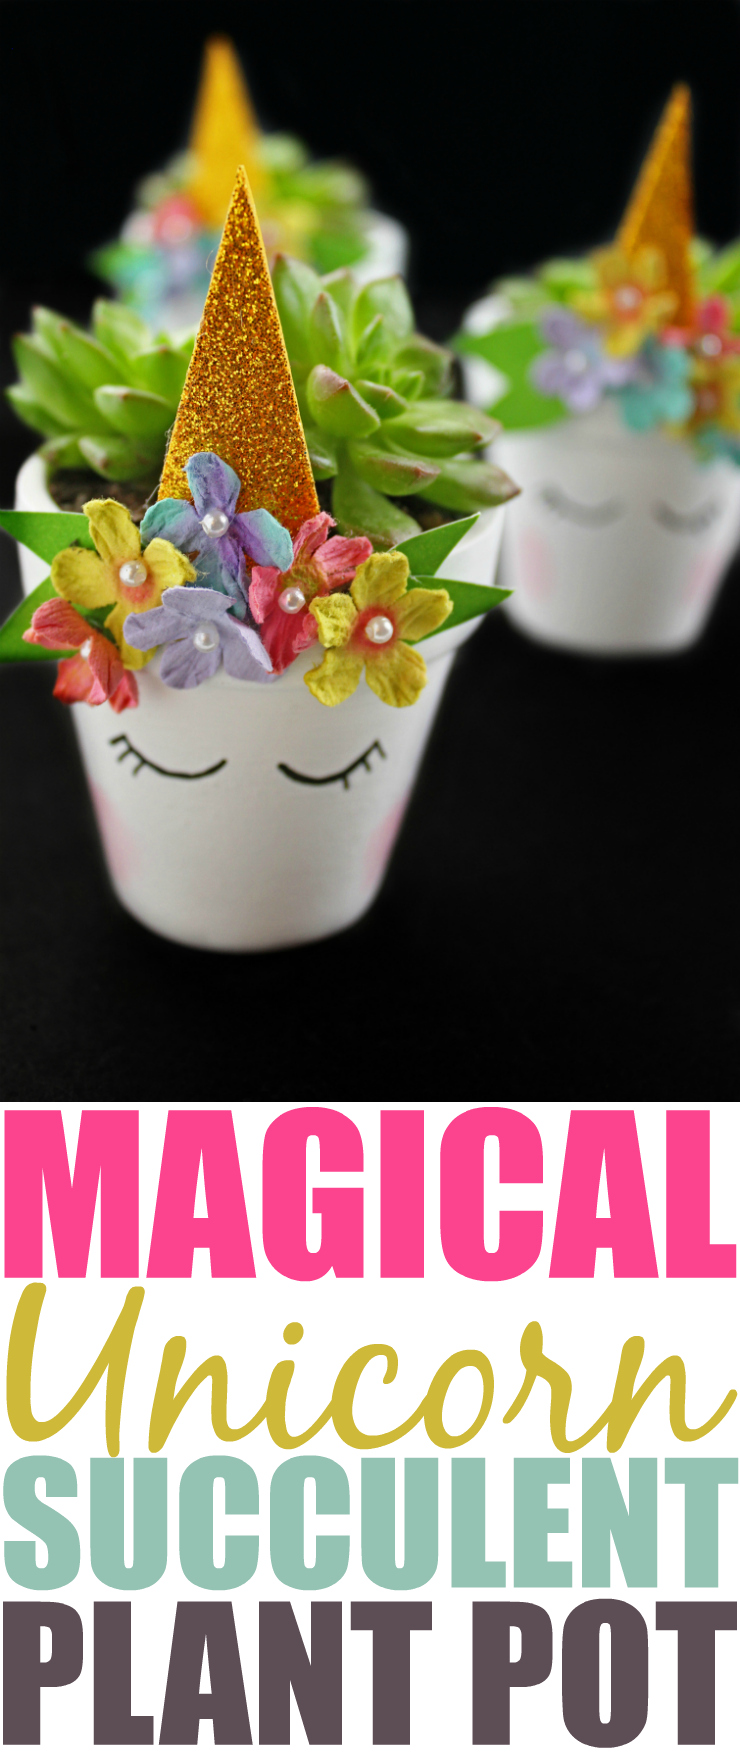 If you are looking to brighten your home or office, these adorable unicorn succulent plant pots are the perfect weekend craft!